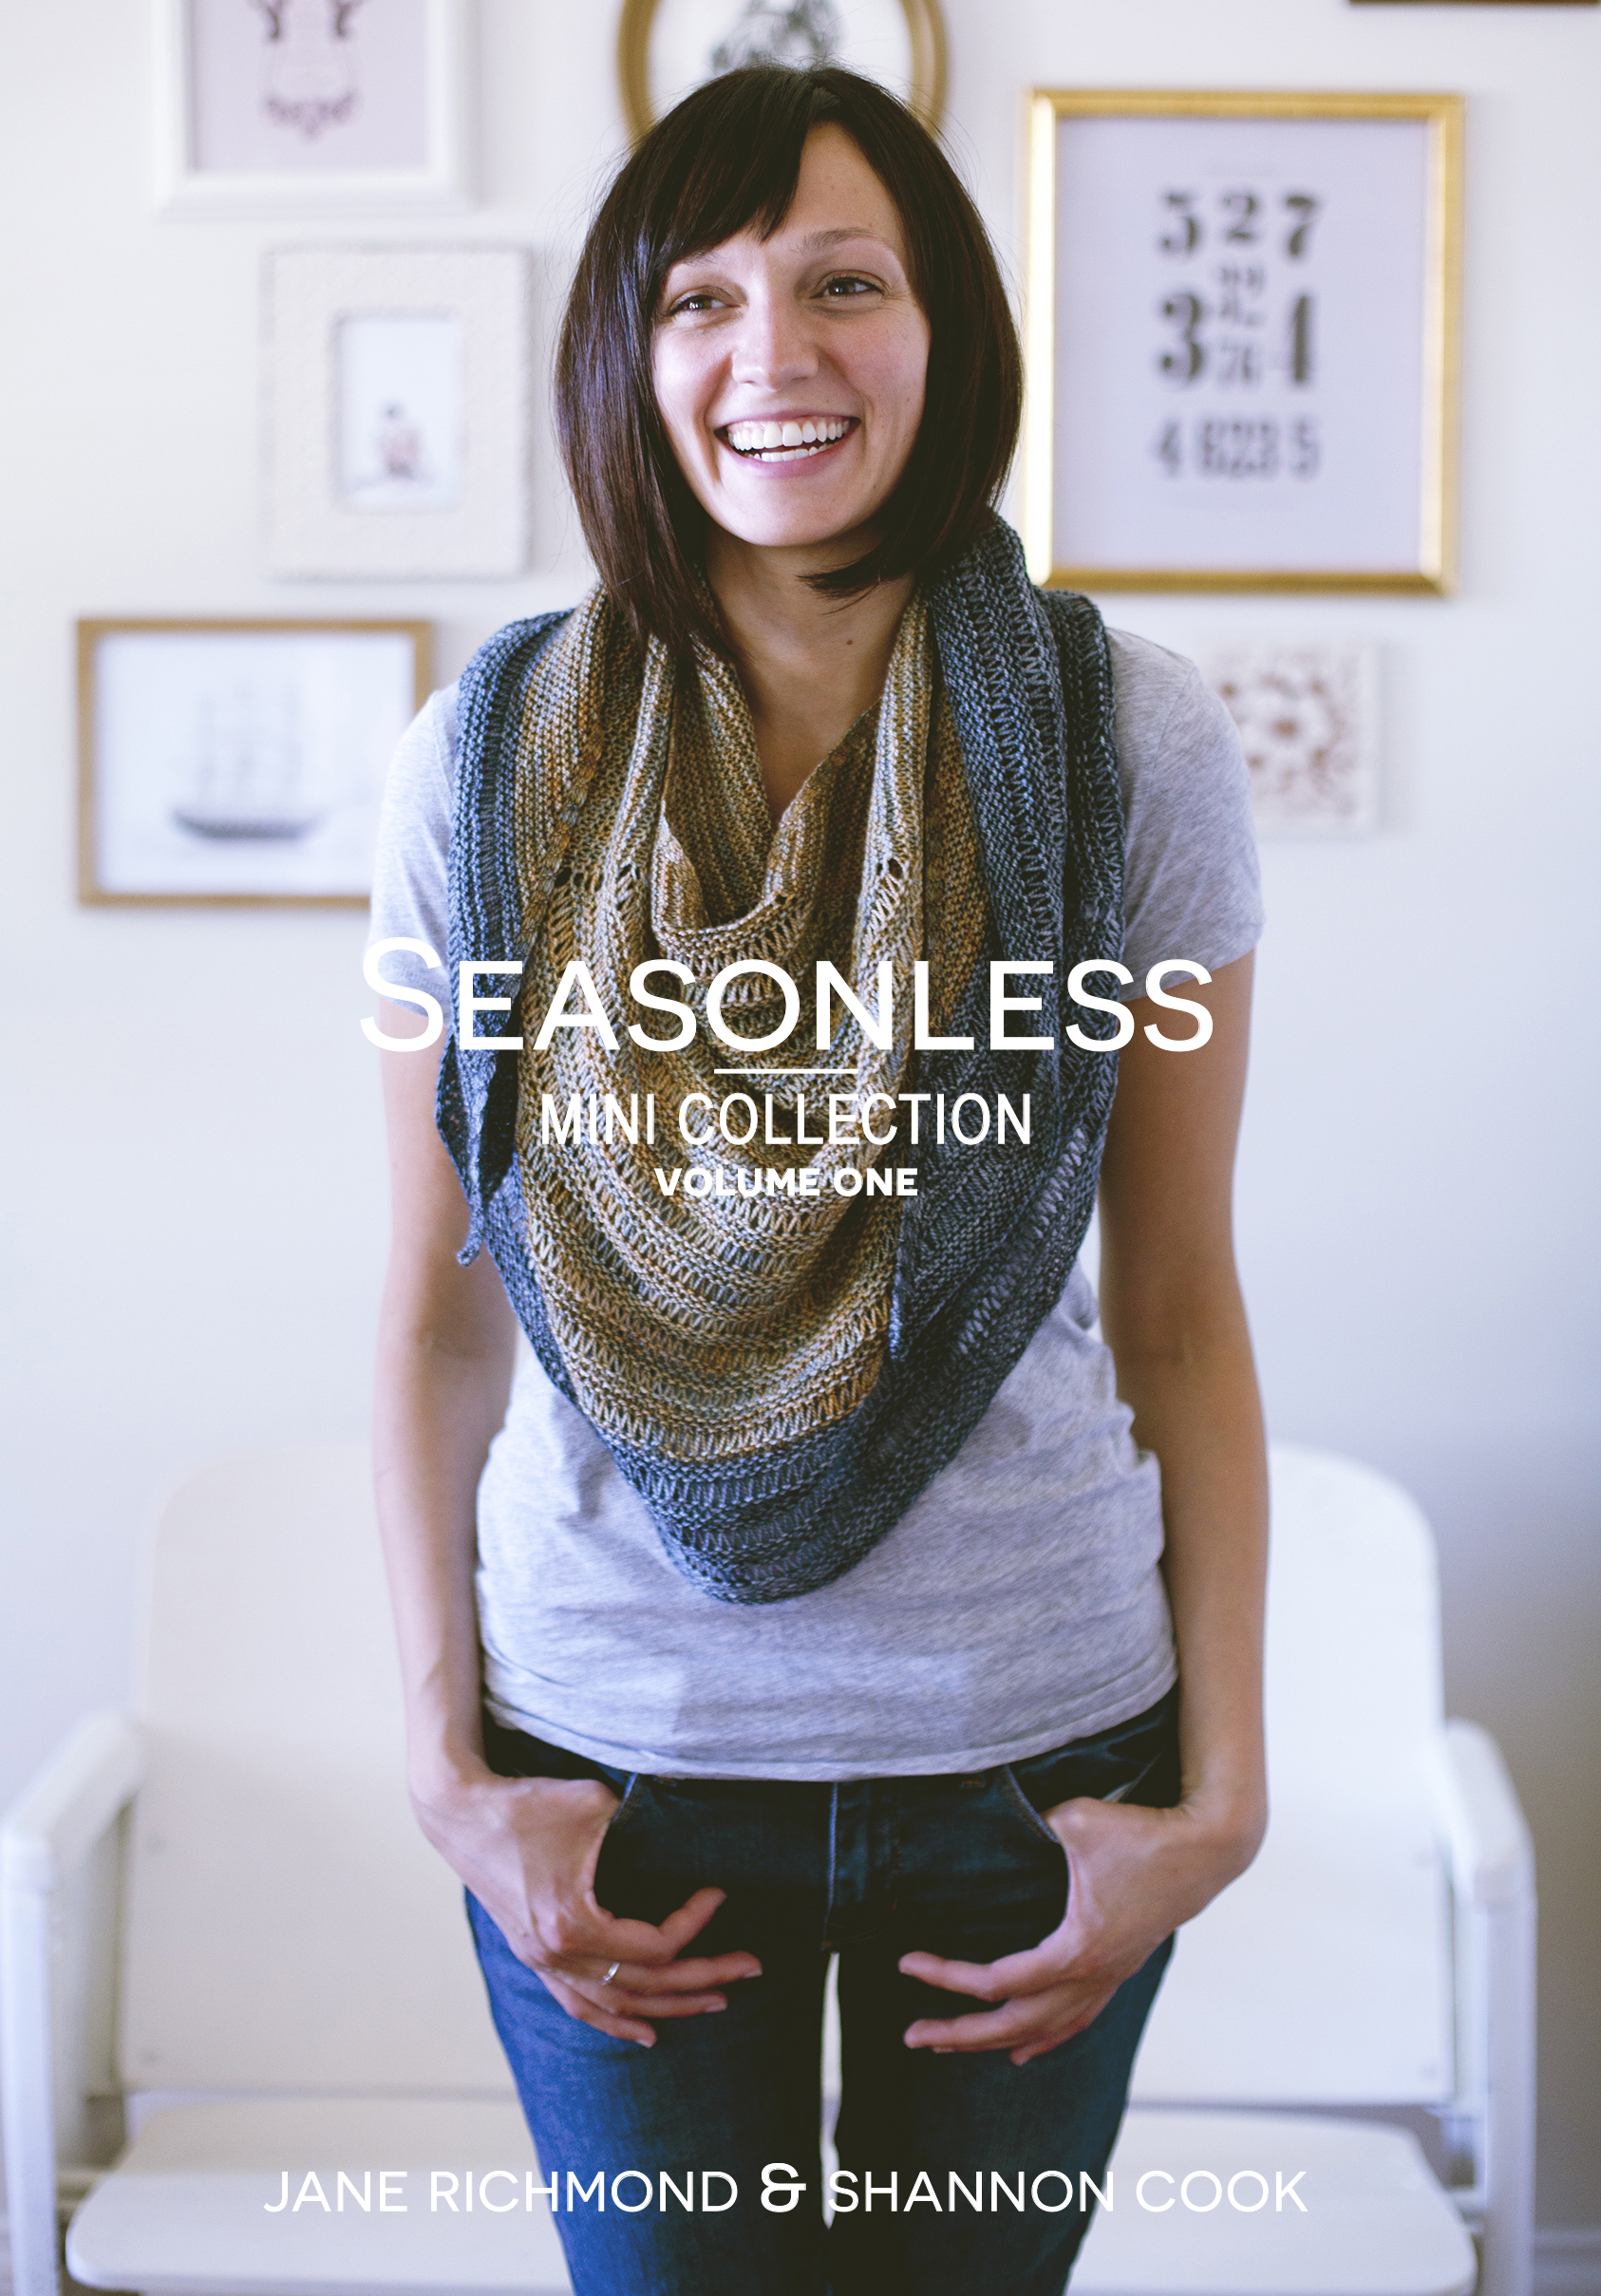 Seasonless by Shannon Cook & Jane Richmond